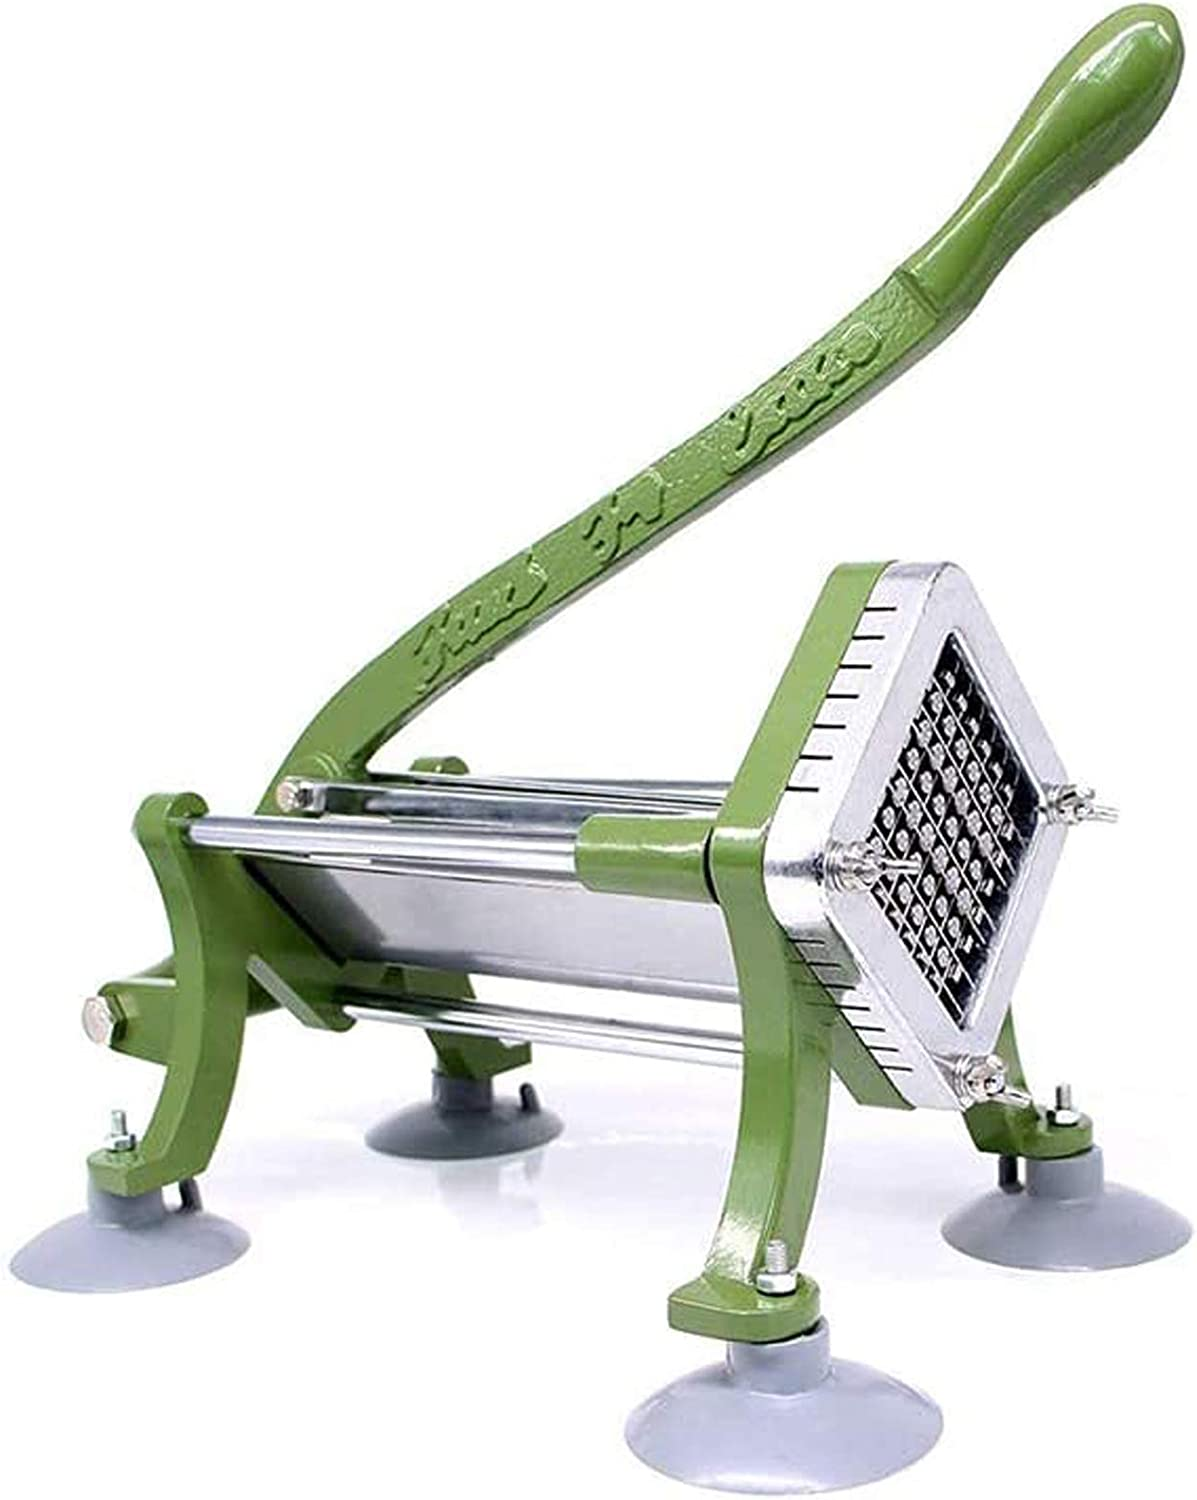 YUEWO French Fry Cutter Uncrustables Commercial Potato Cutter with Suction Feet, 1/4